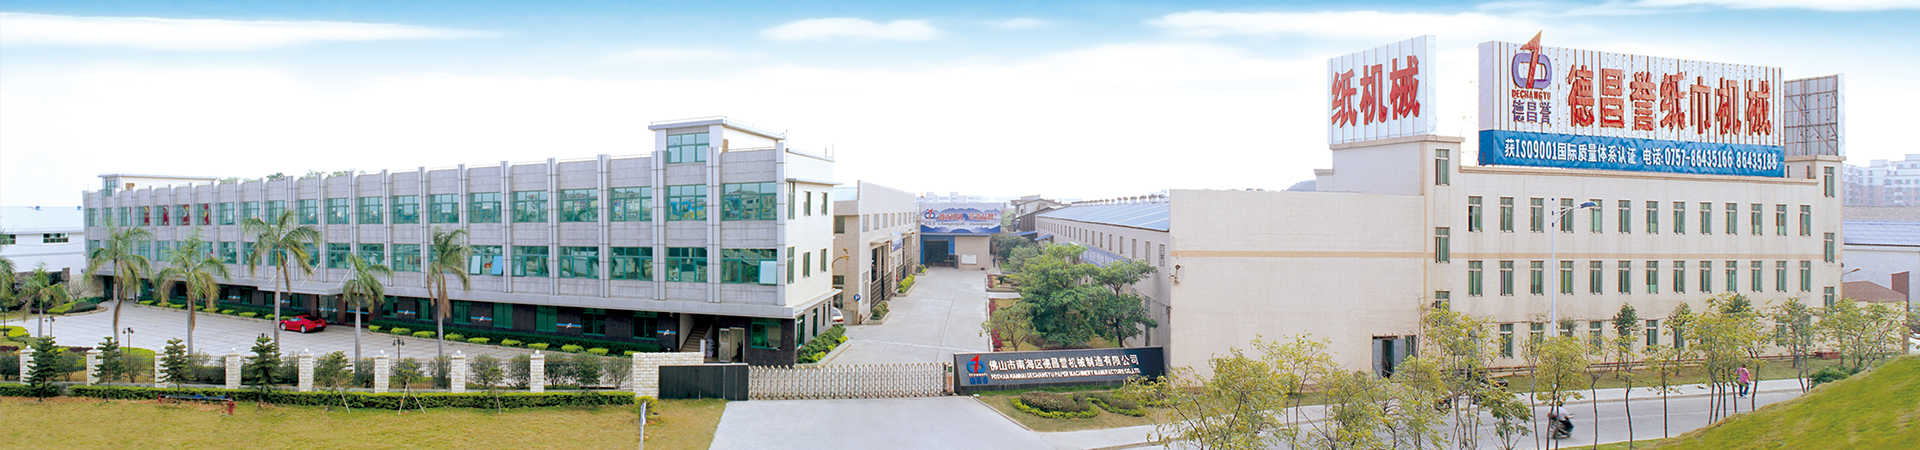 dechangyu paper machine factory